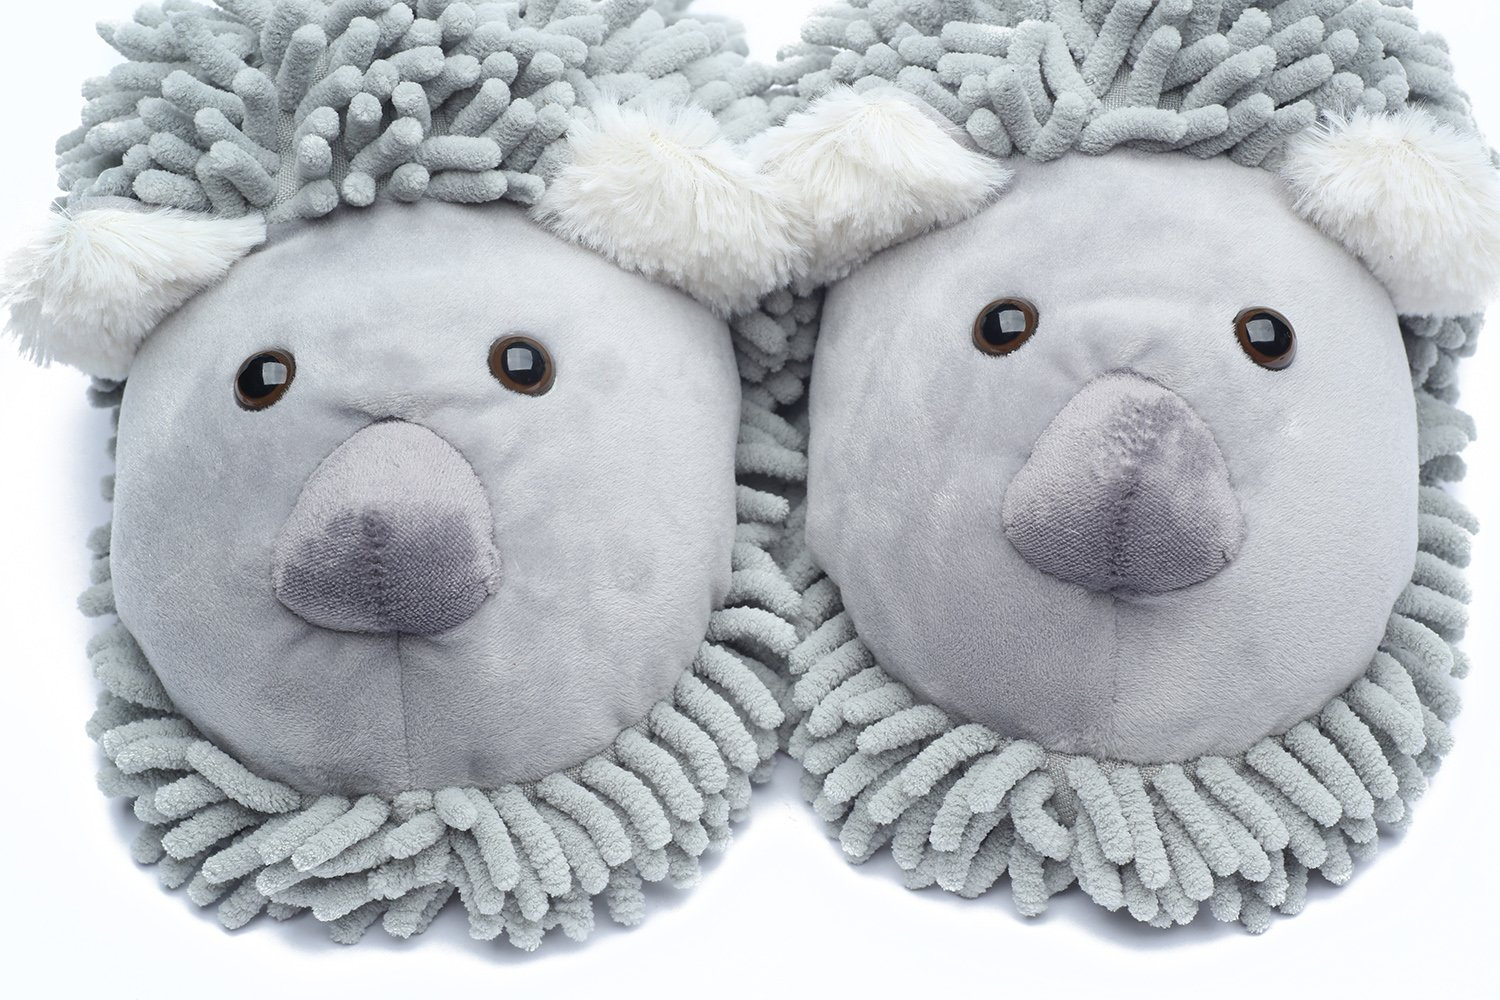 Ofoot Winter Warm Plush Anti-slip Indoor Animal Slippers for Women and Men (M/L 8-10 B(M) US, Grey(Koala)) by Ofoot (Image #2)